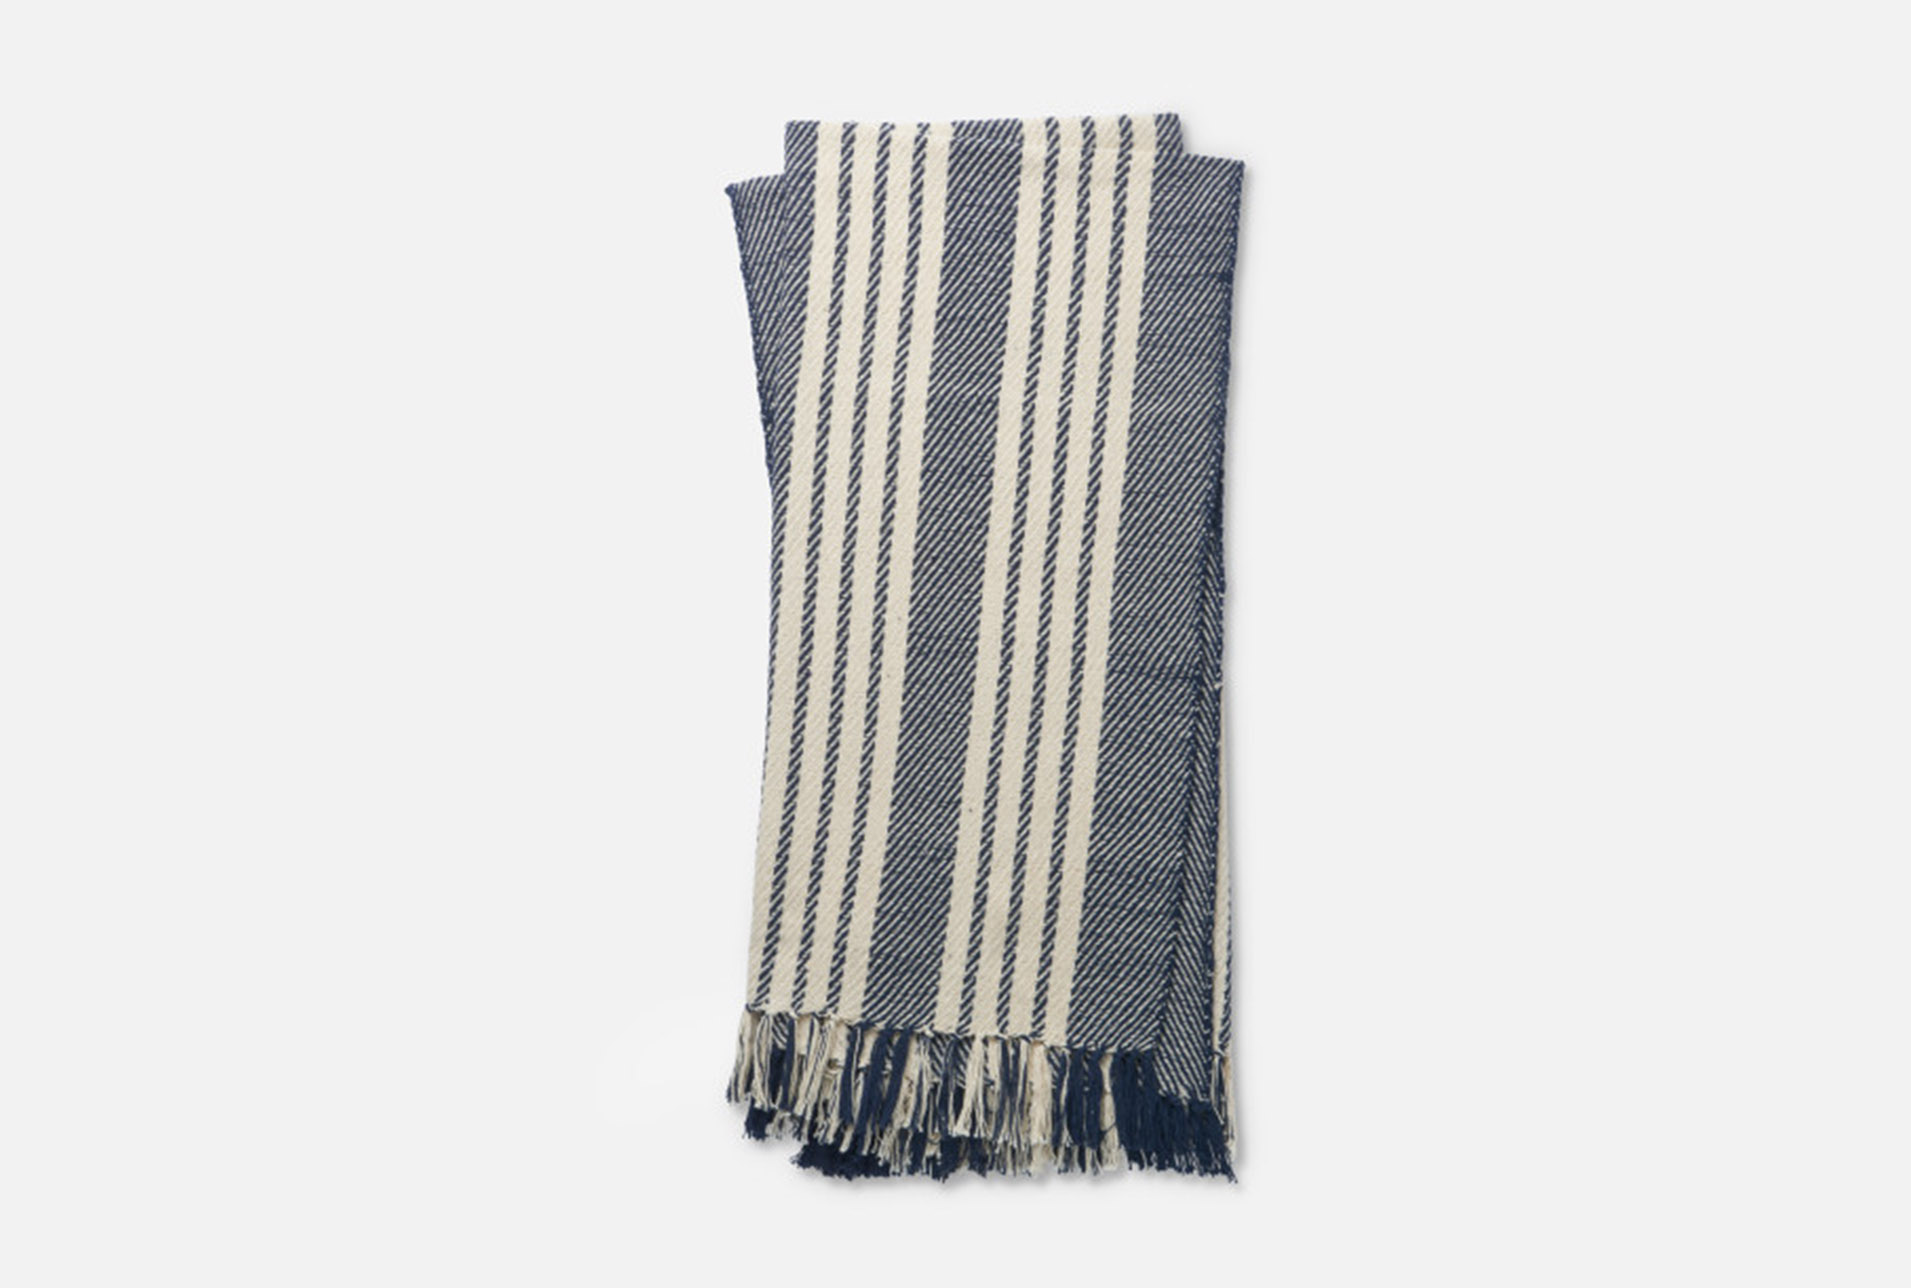 Accent Throw Magnolia Home Lora Navy/Ivory By Joanna Gaines